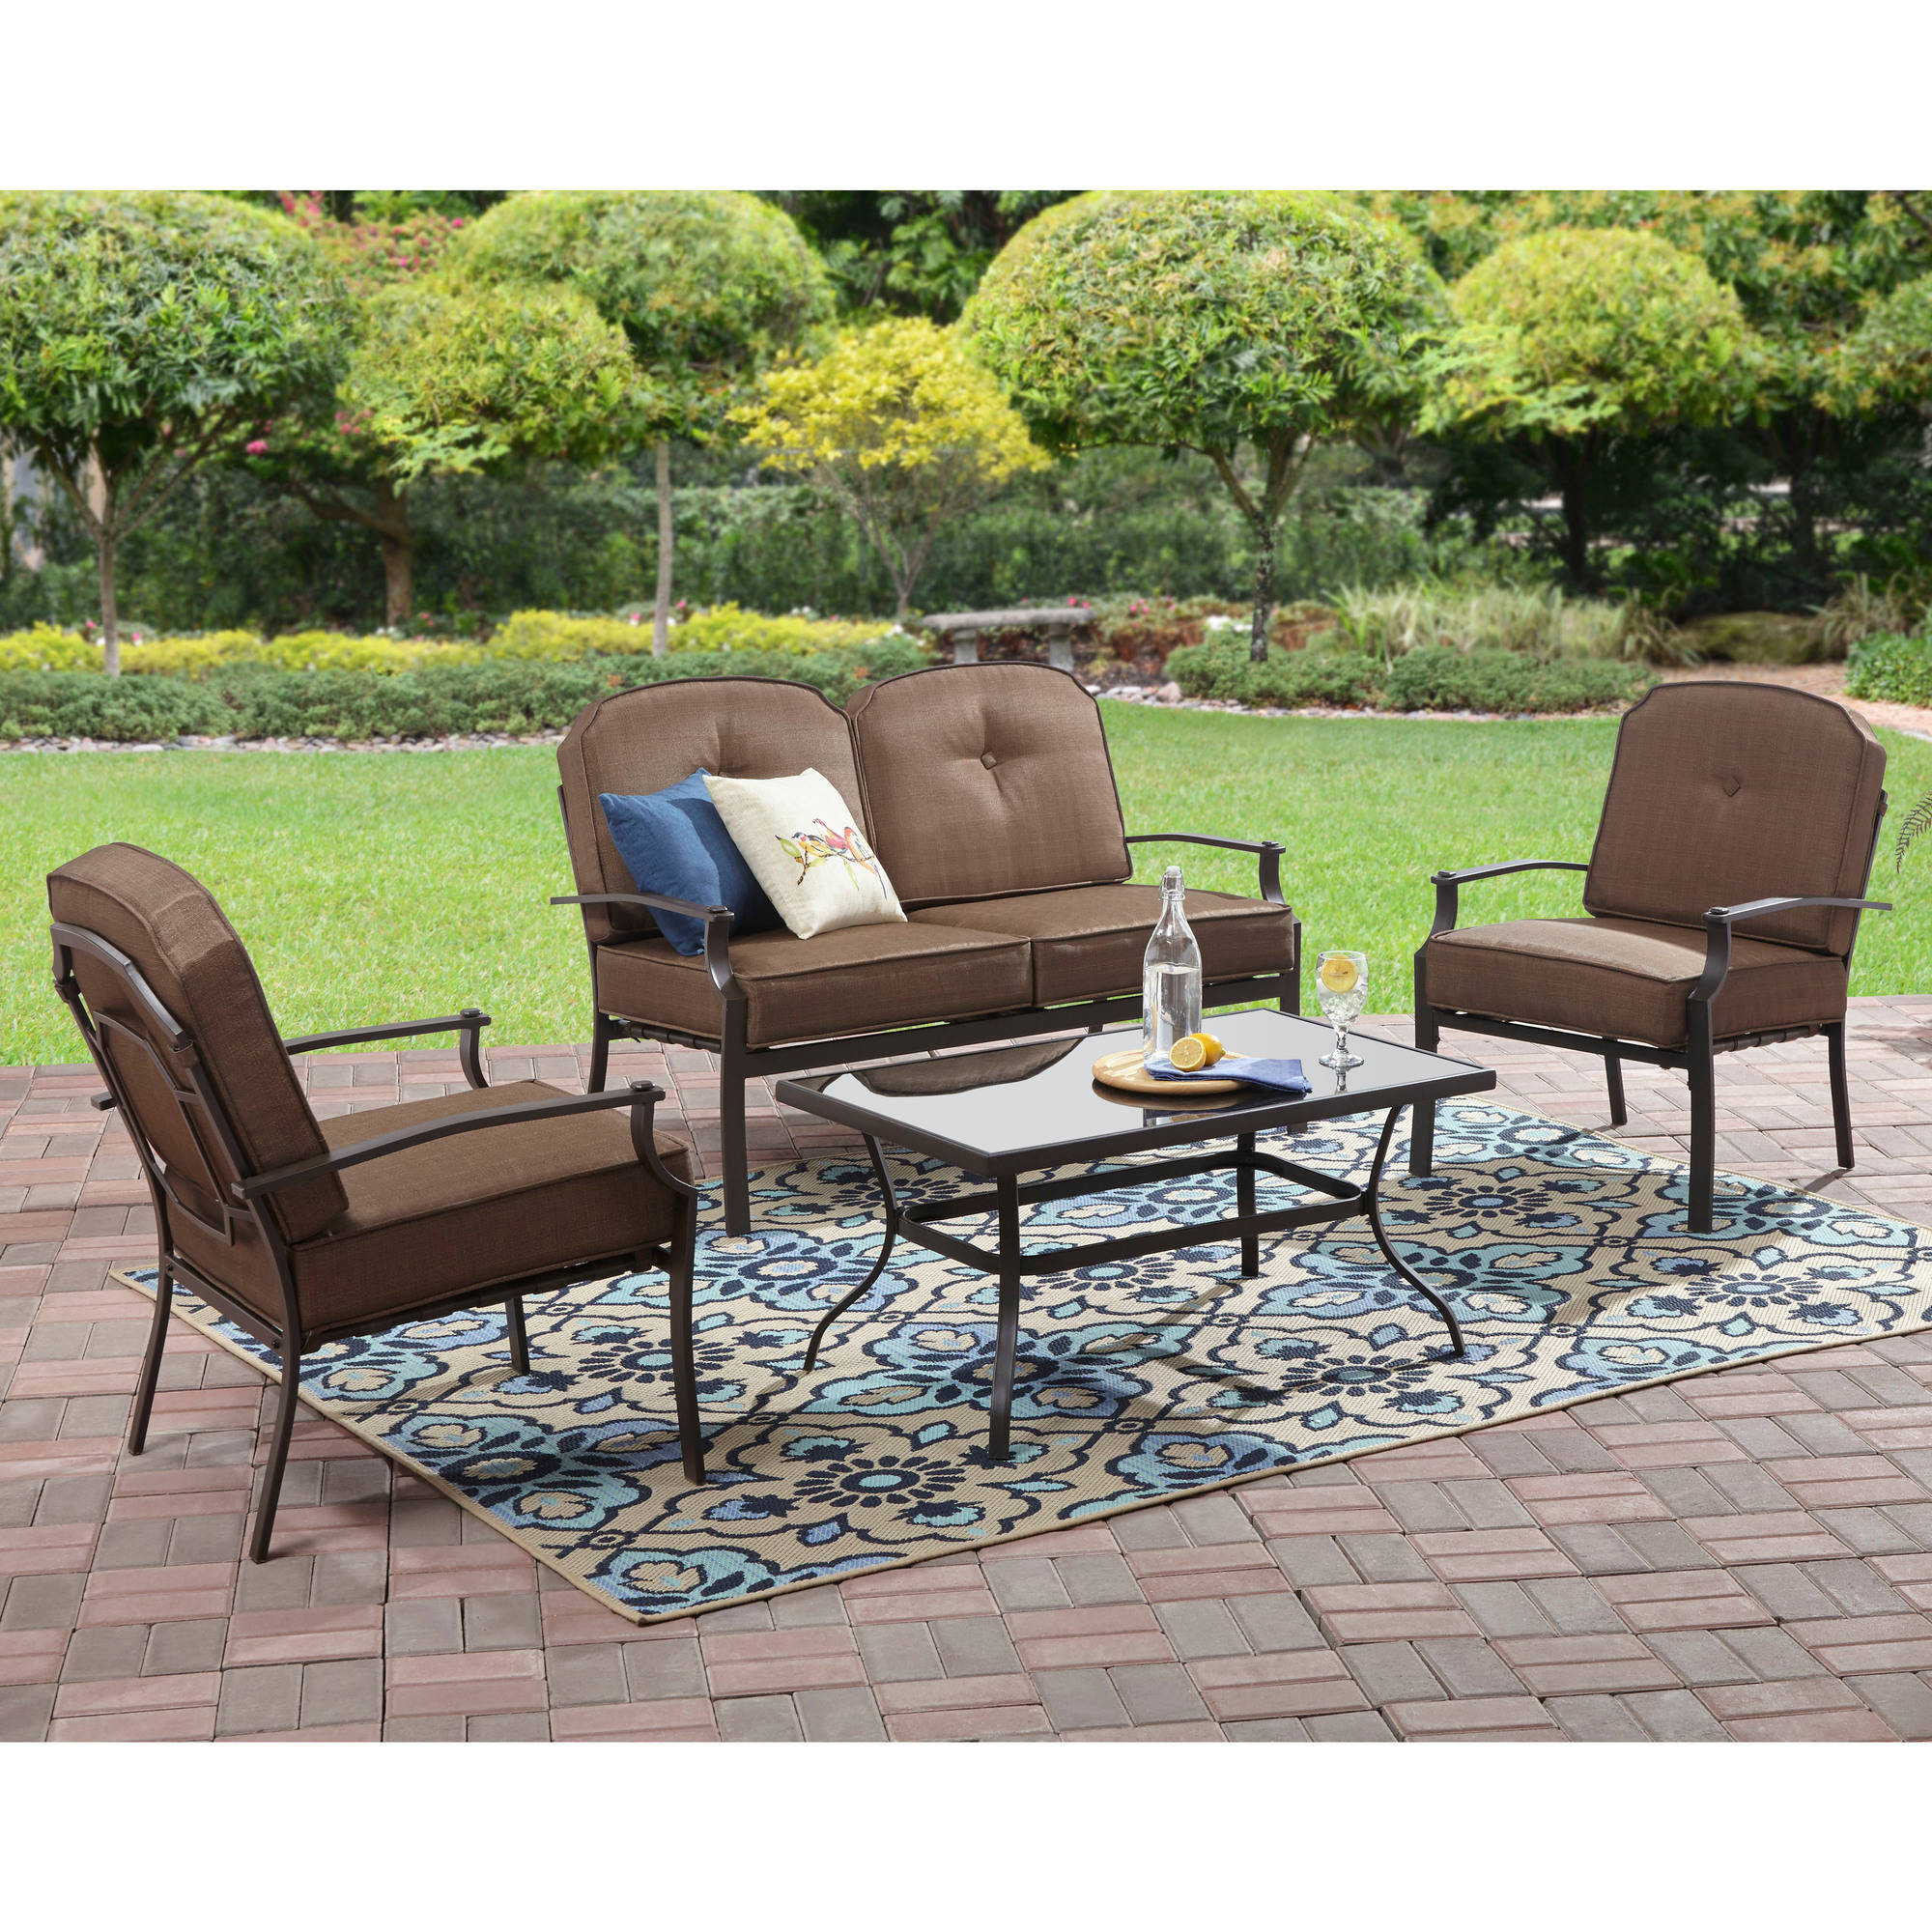 Best ideas about Outdoor Chairs Walmart . Save or Pin Mainstays Wentworth 3 Piece High Outdoor Bistro Set Seats Now.